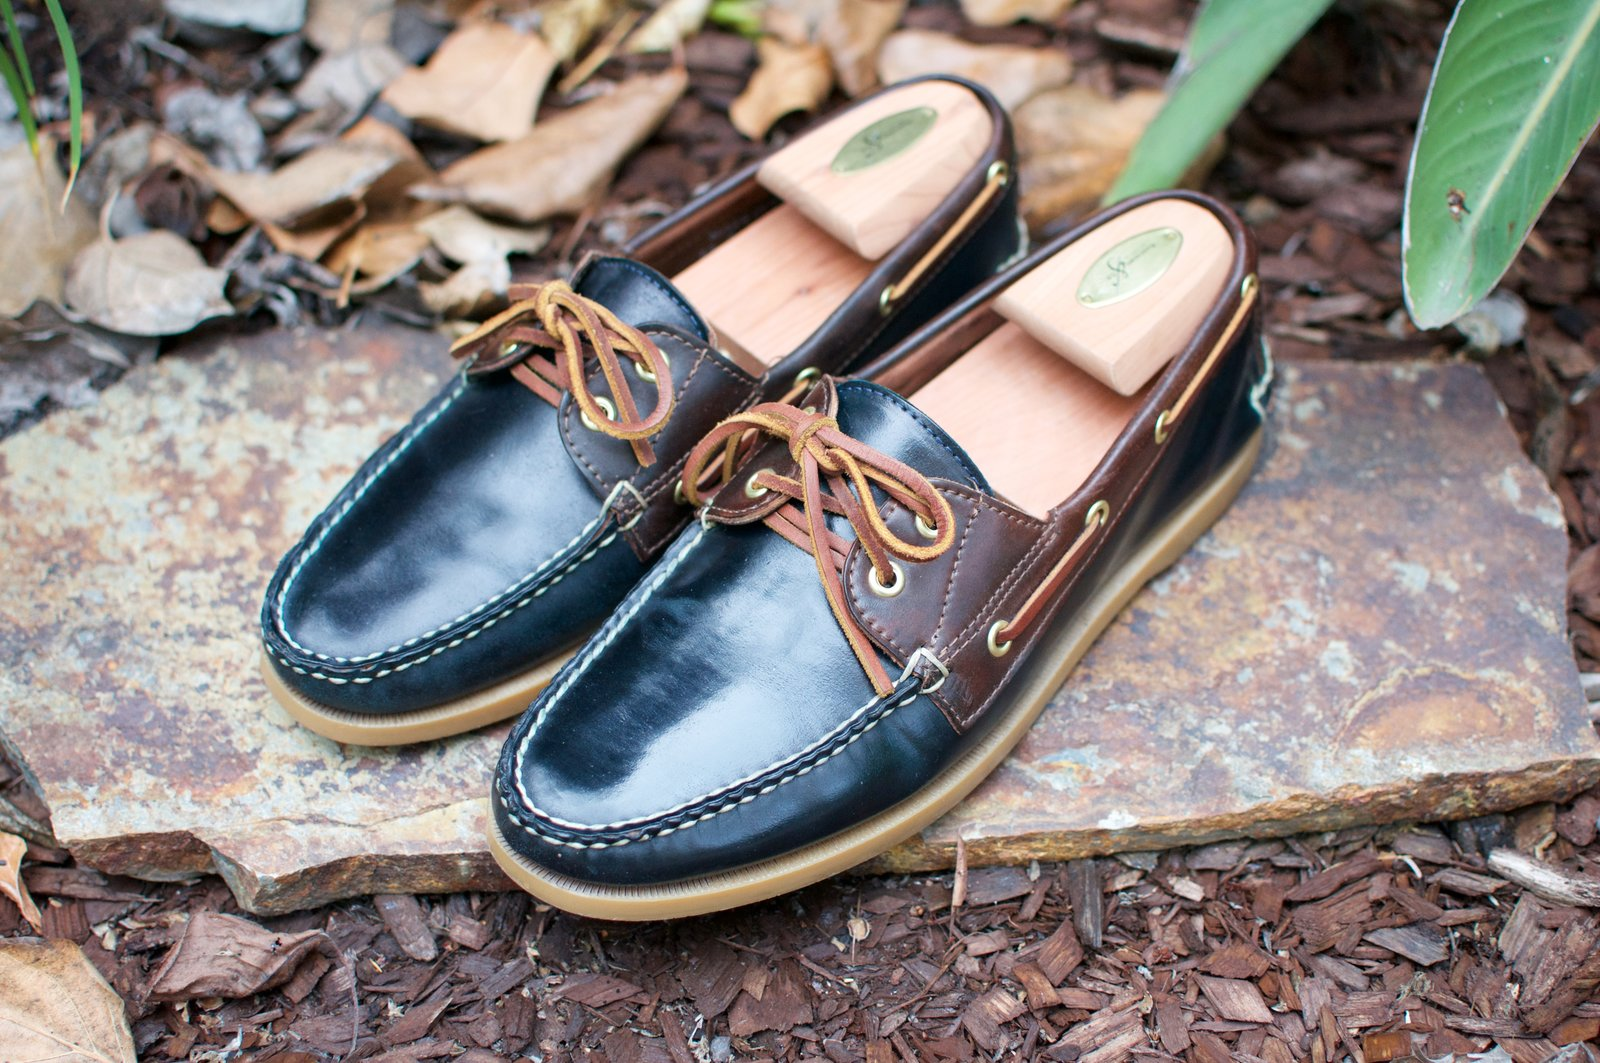 Rancourt Navy and Brown Shell Cordovan Boat Shoes - 2020-07-31 - 1.jpg